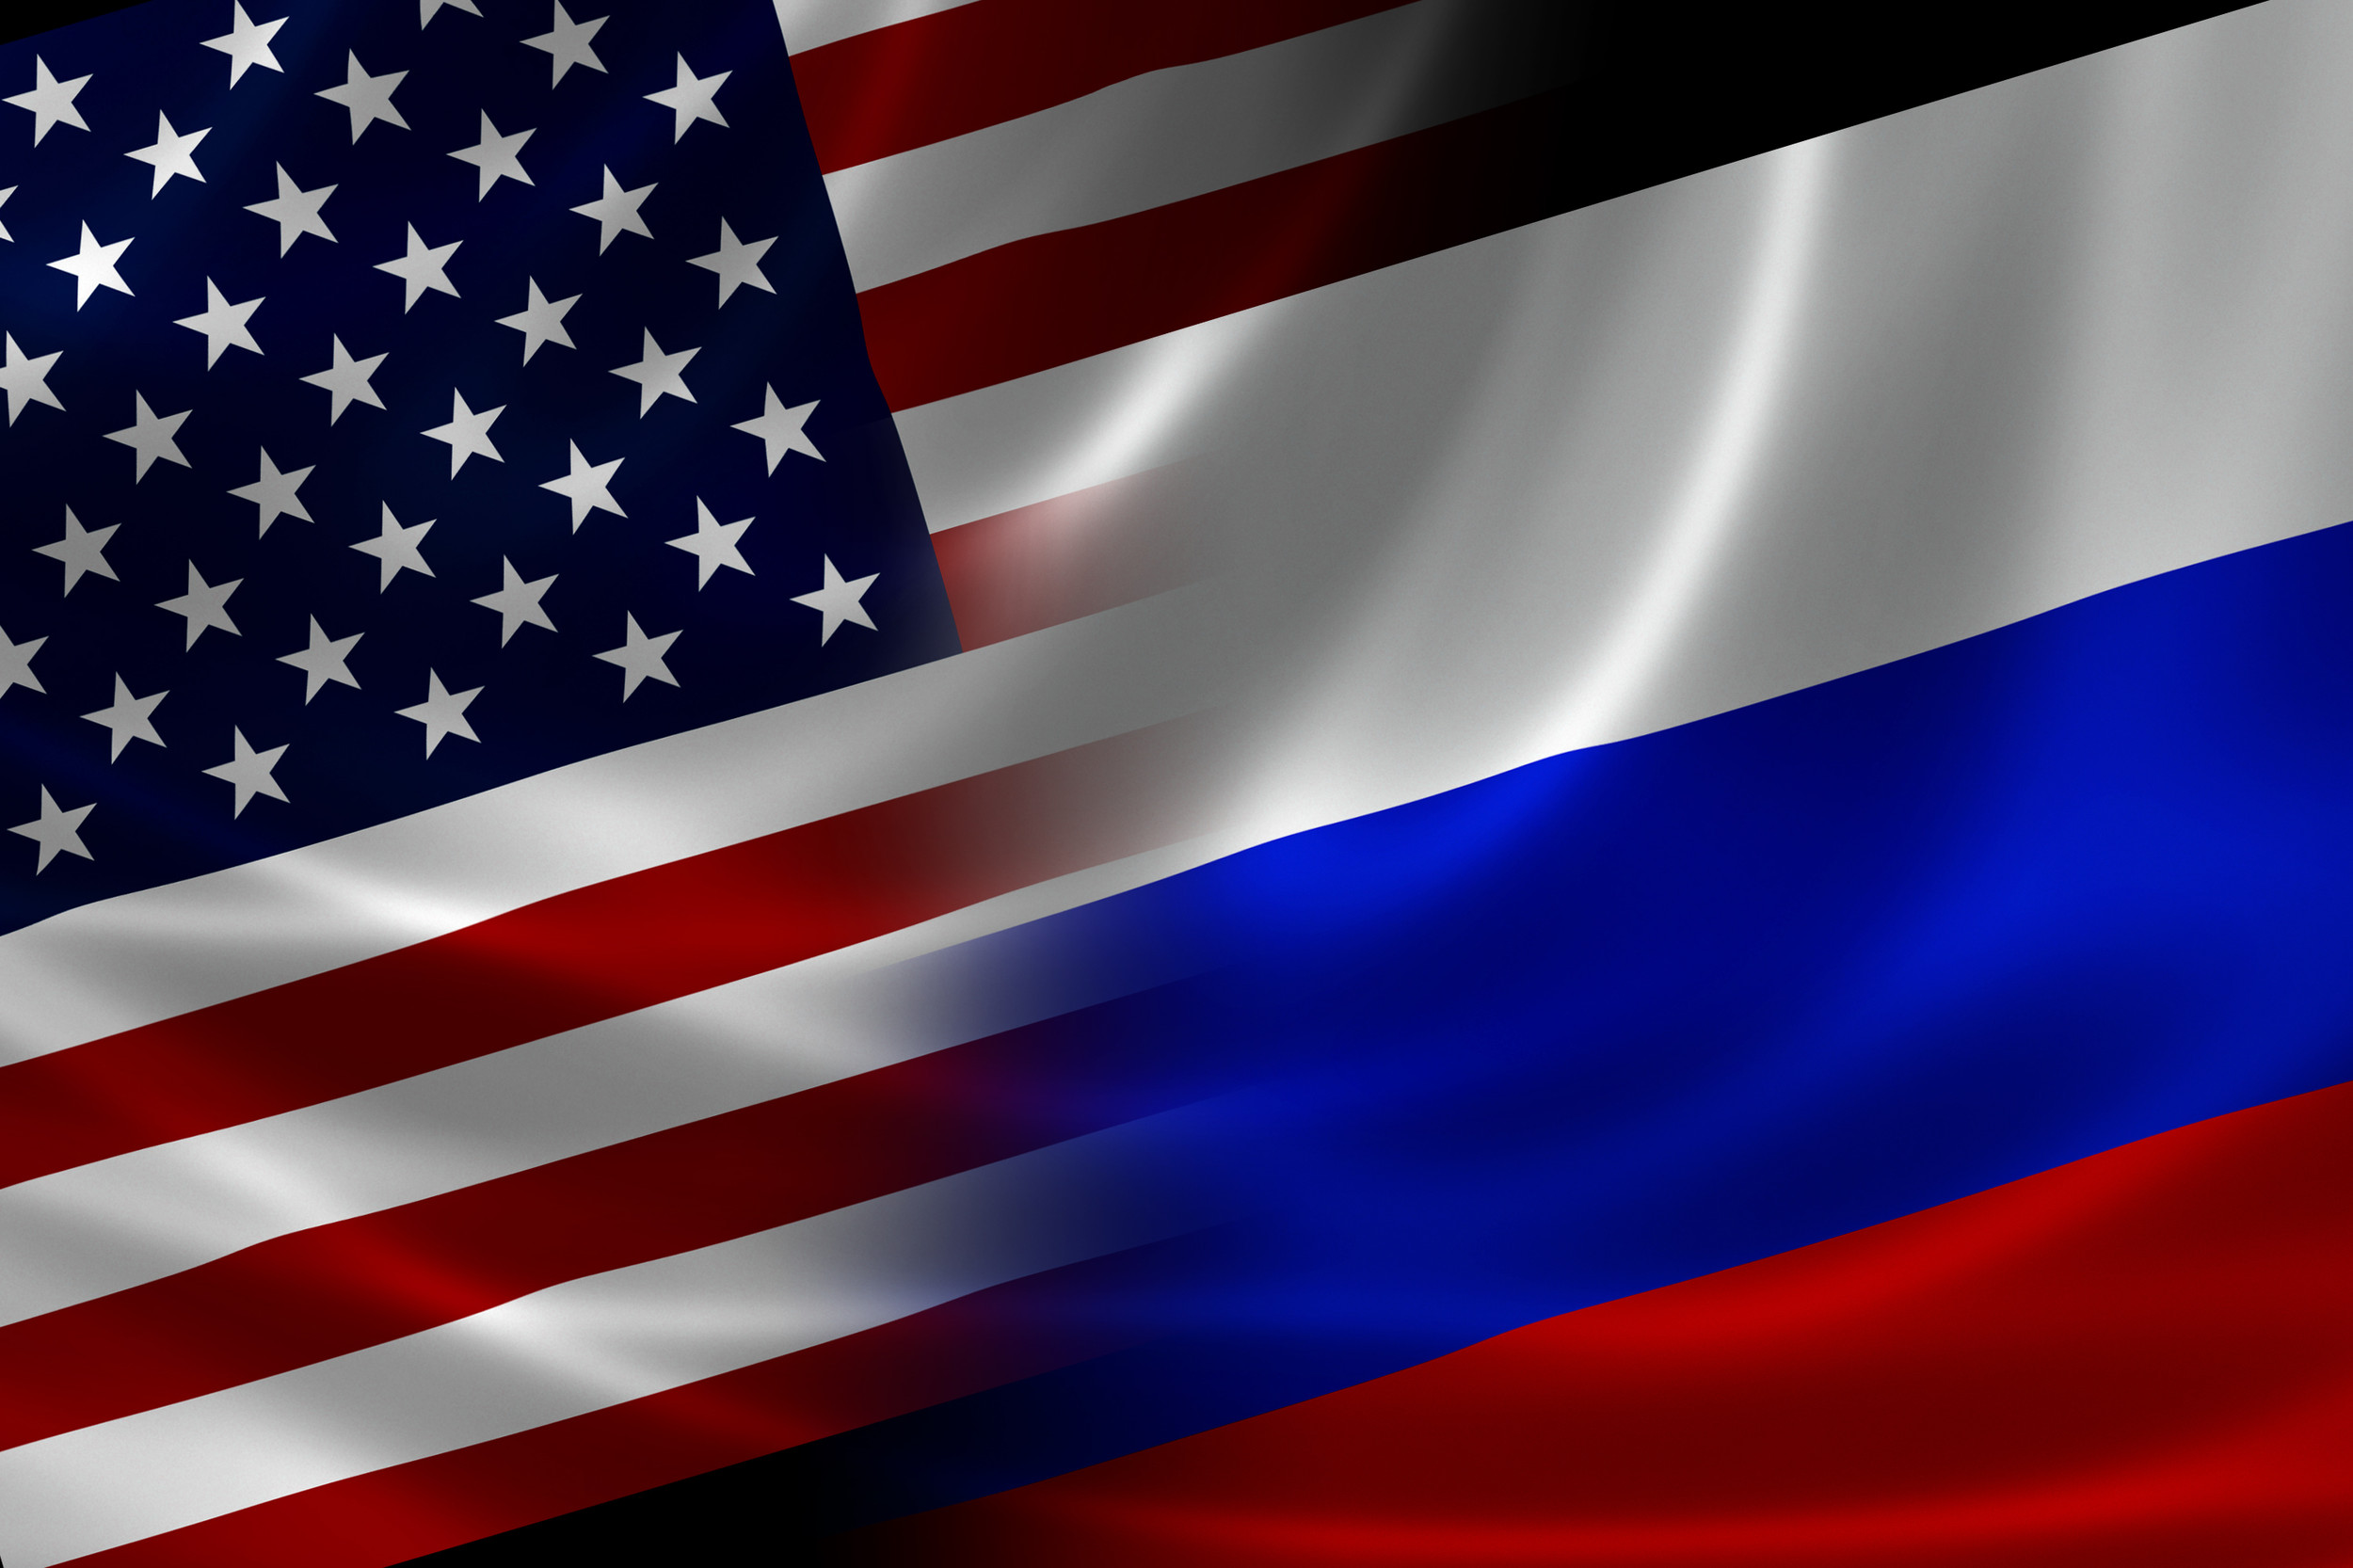 Top US and Russian diplomats meet, make no visible progress